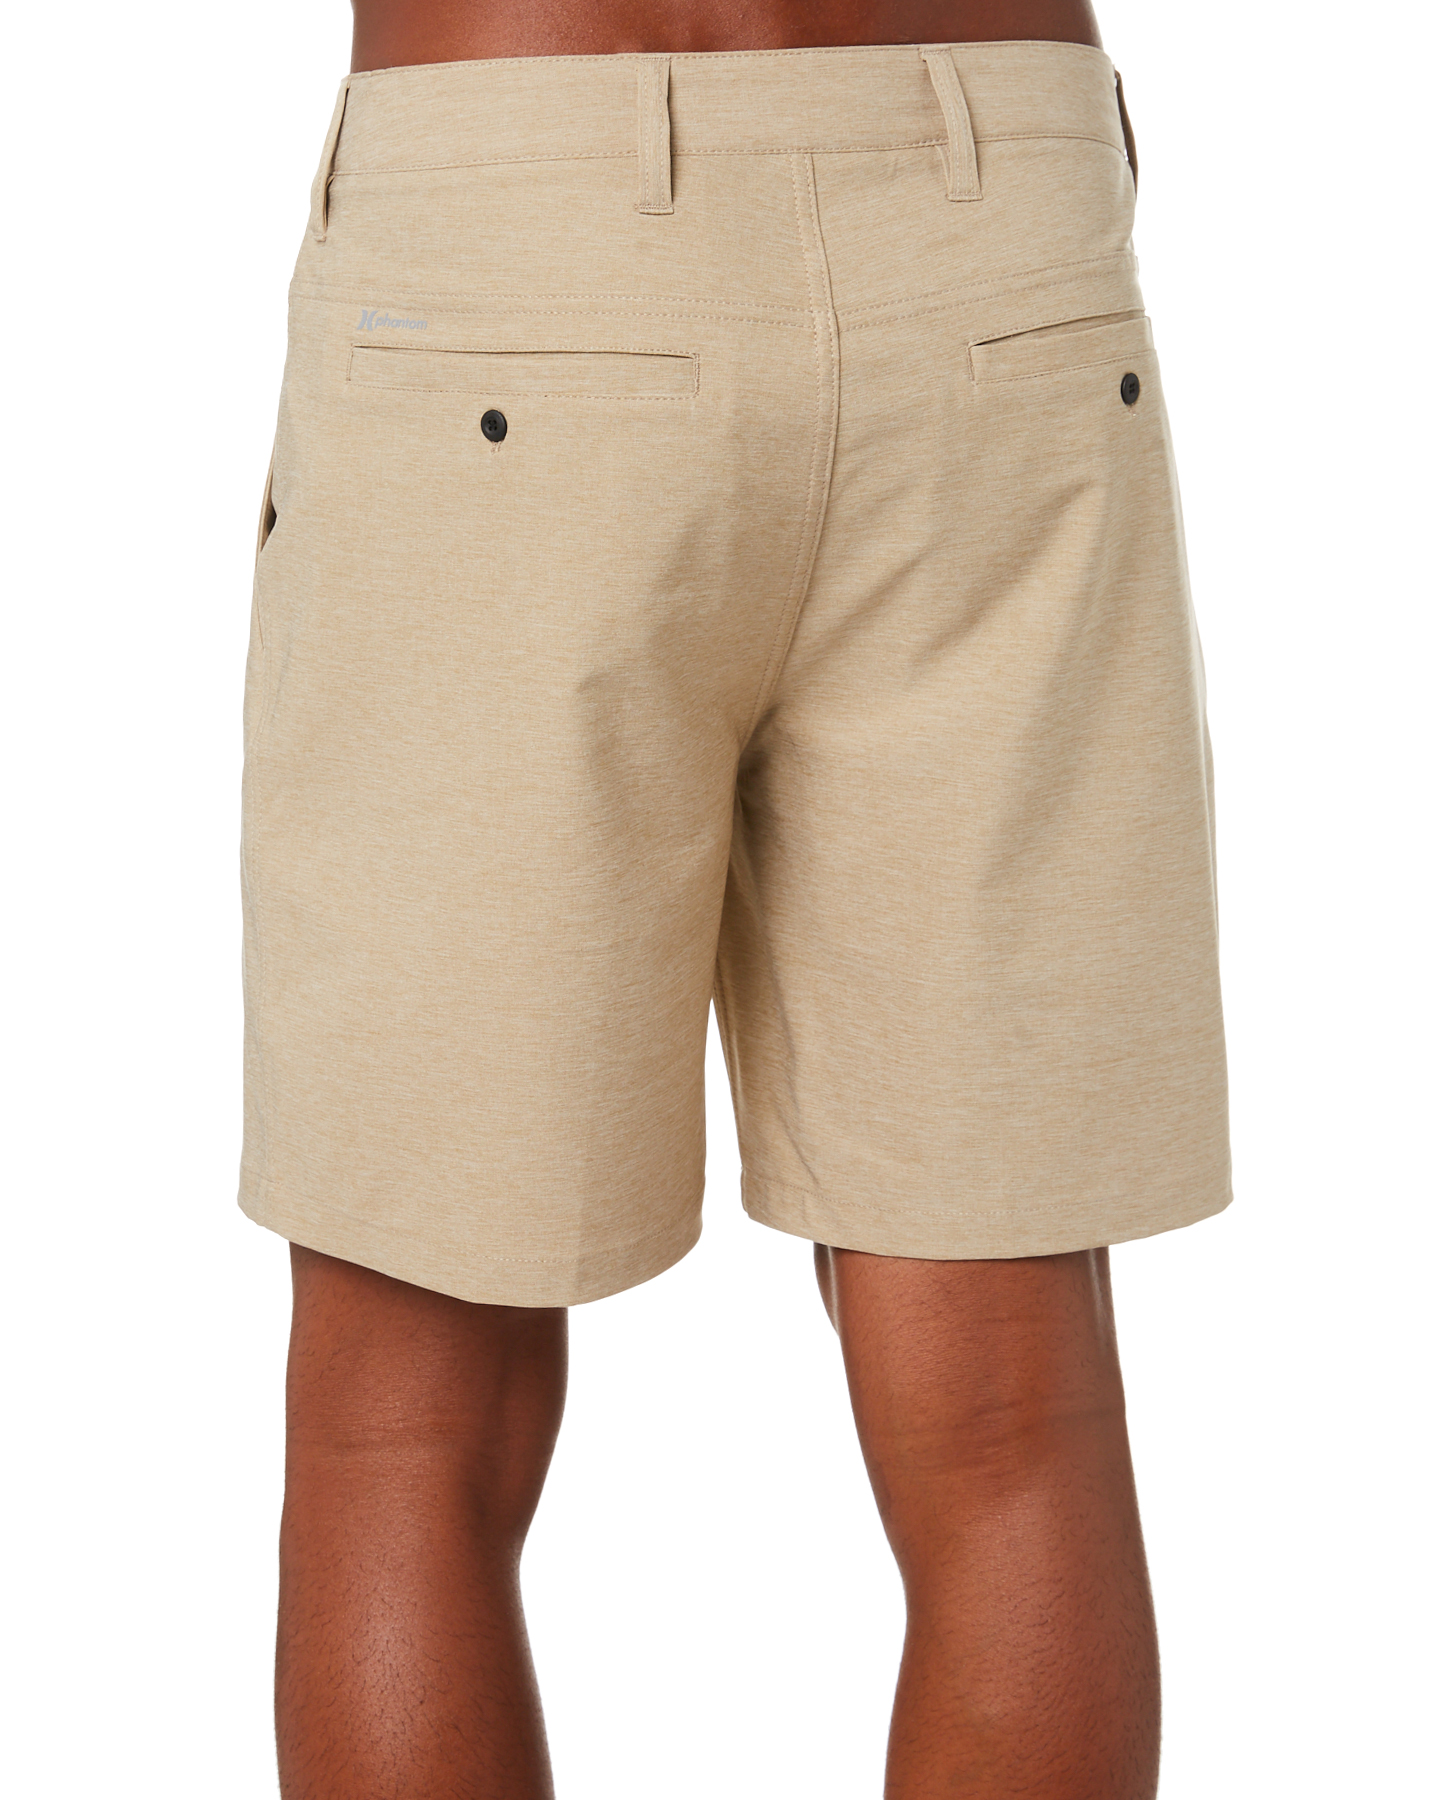 New-Hurley-Men-039-s-Dri-Fit-Chino-Short-21In-Mens-Short-Fitted-Spandex-Grey thumbnail 13